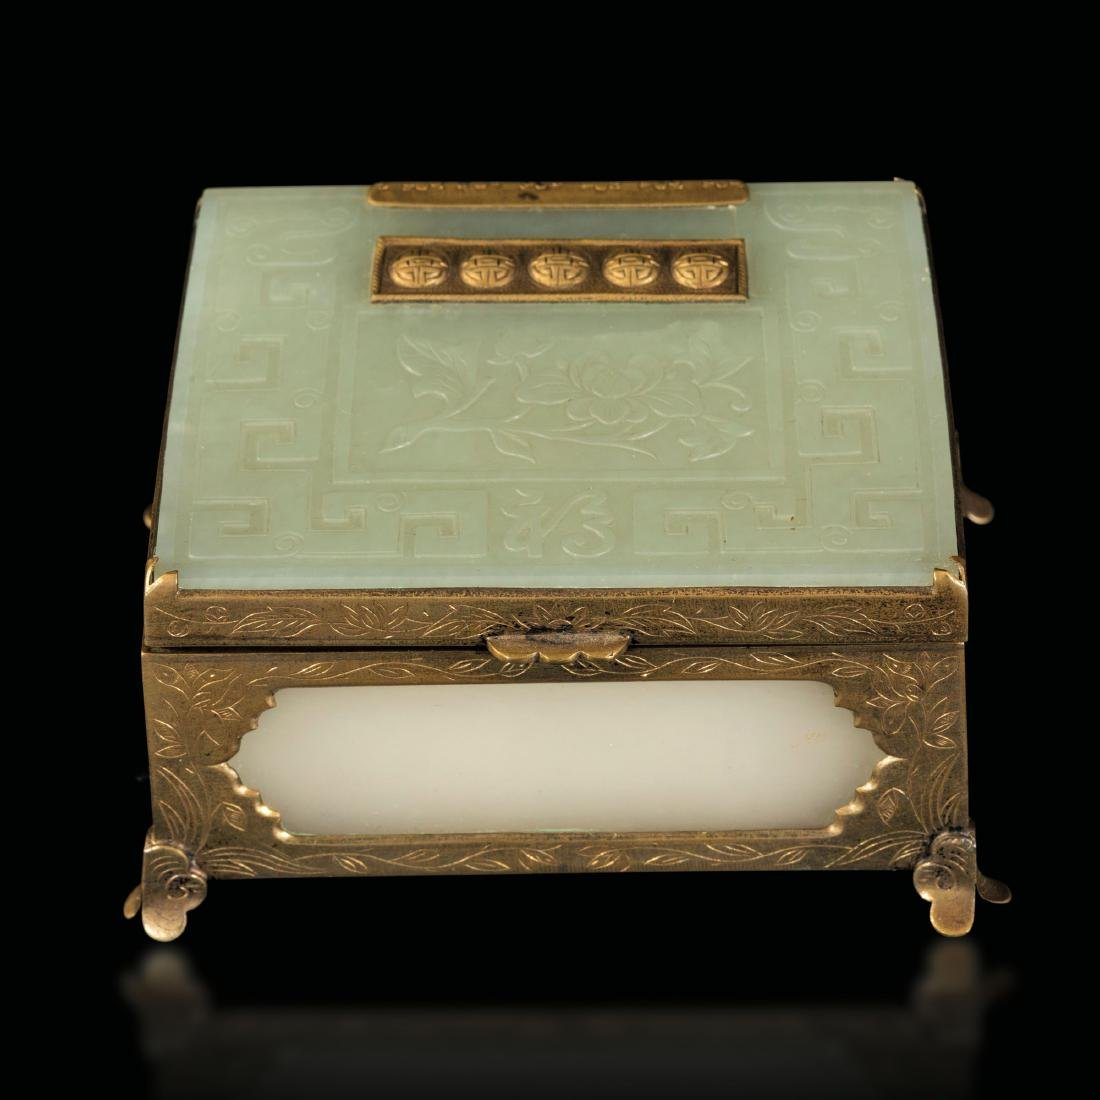 A jewelry box, China, Qing Dynasty